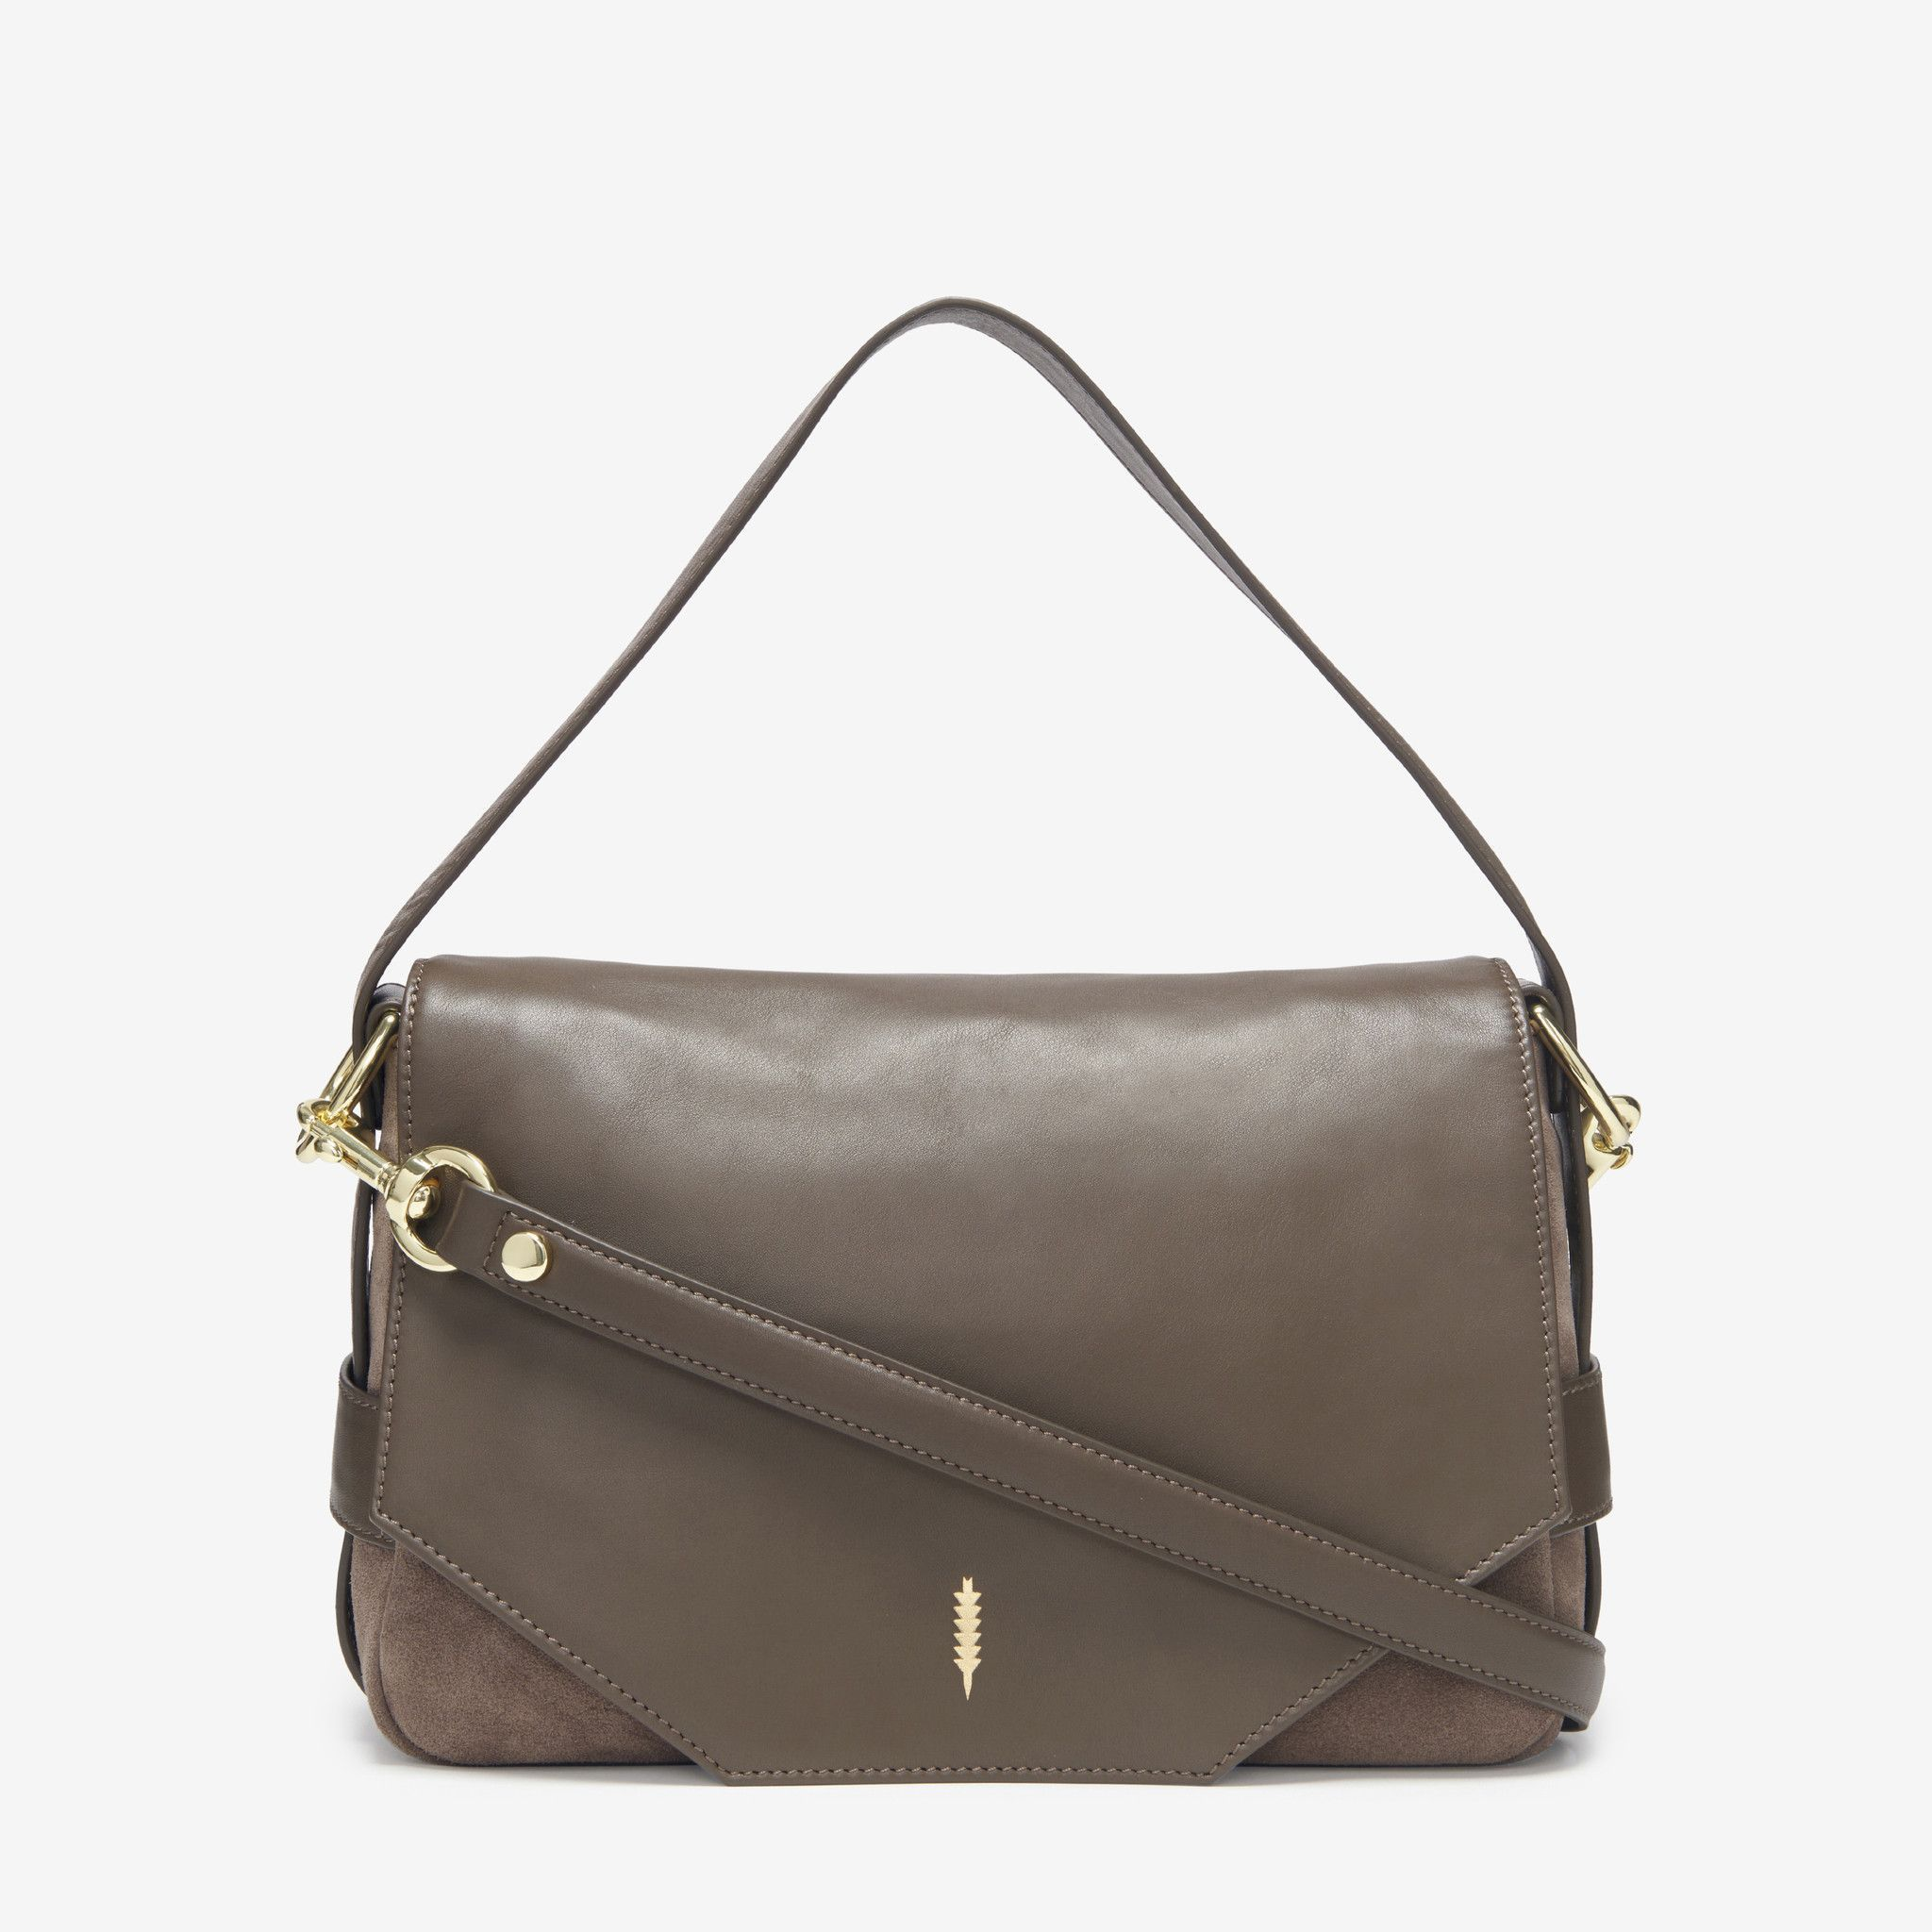 ed0b0d0a9 GEORGINA CROSSBODY - HAZEL SUEDE – THACKER | HANDBAGS | Fashion ...